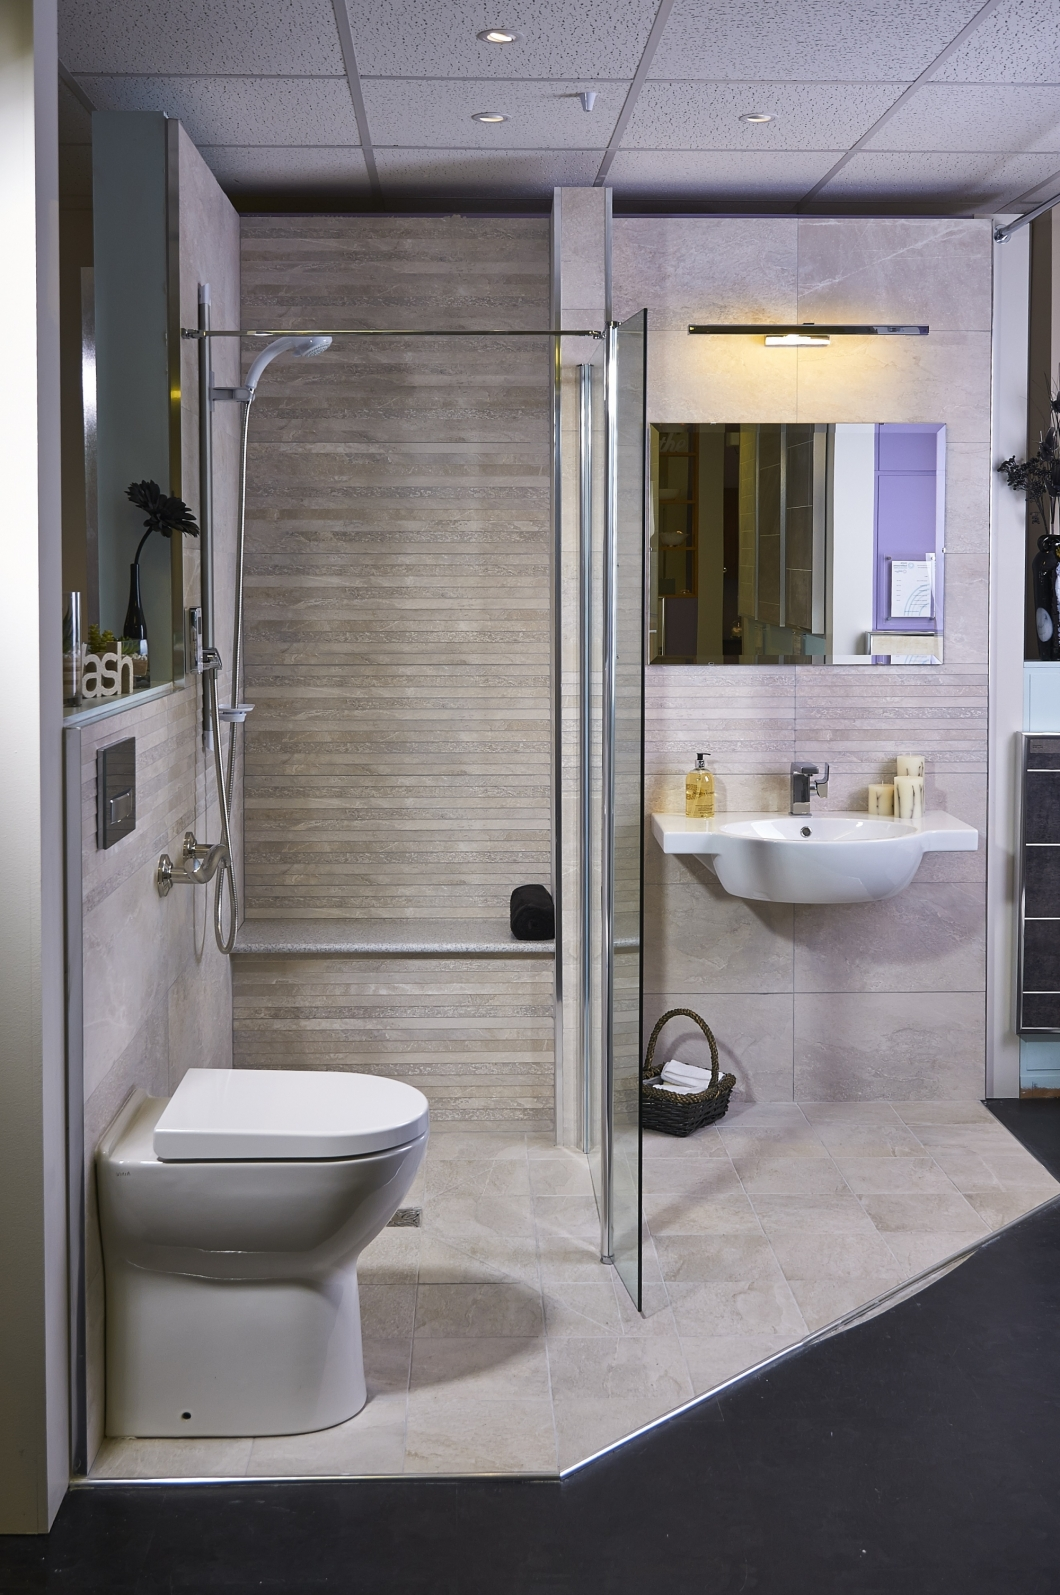 Stylish amp Accessible Wet Floor Showers Design Fit More